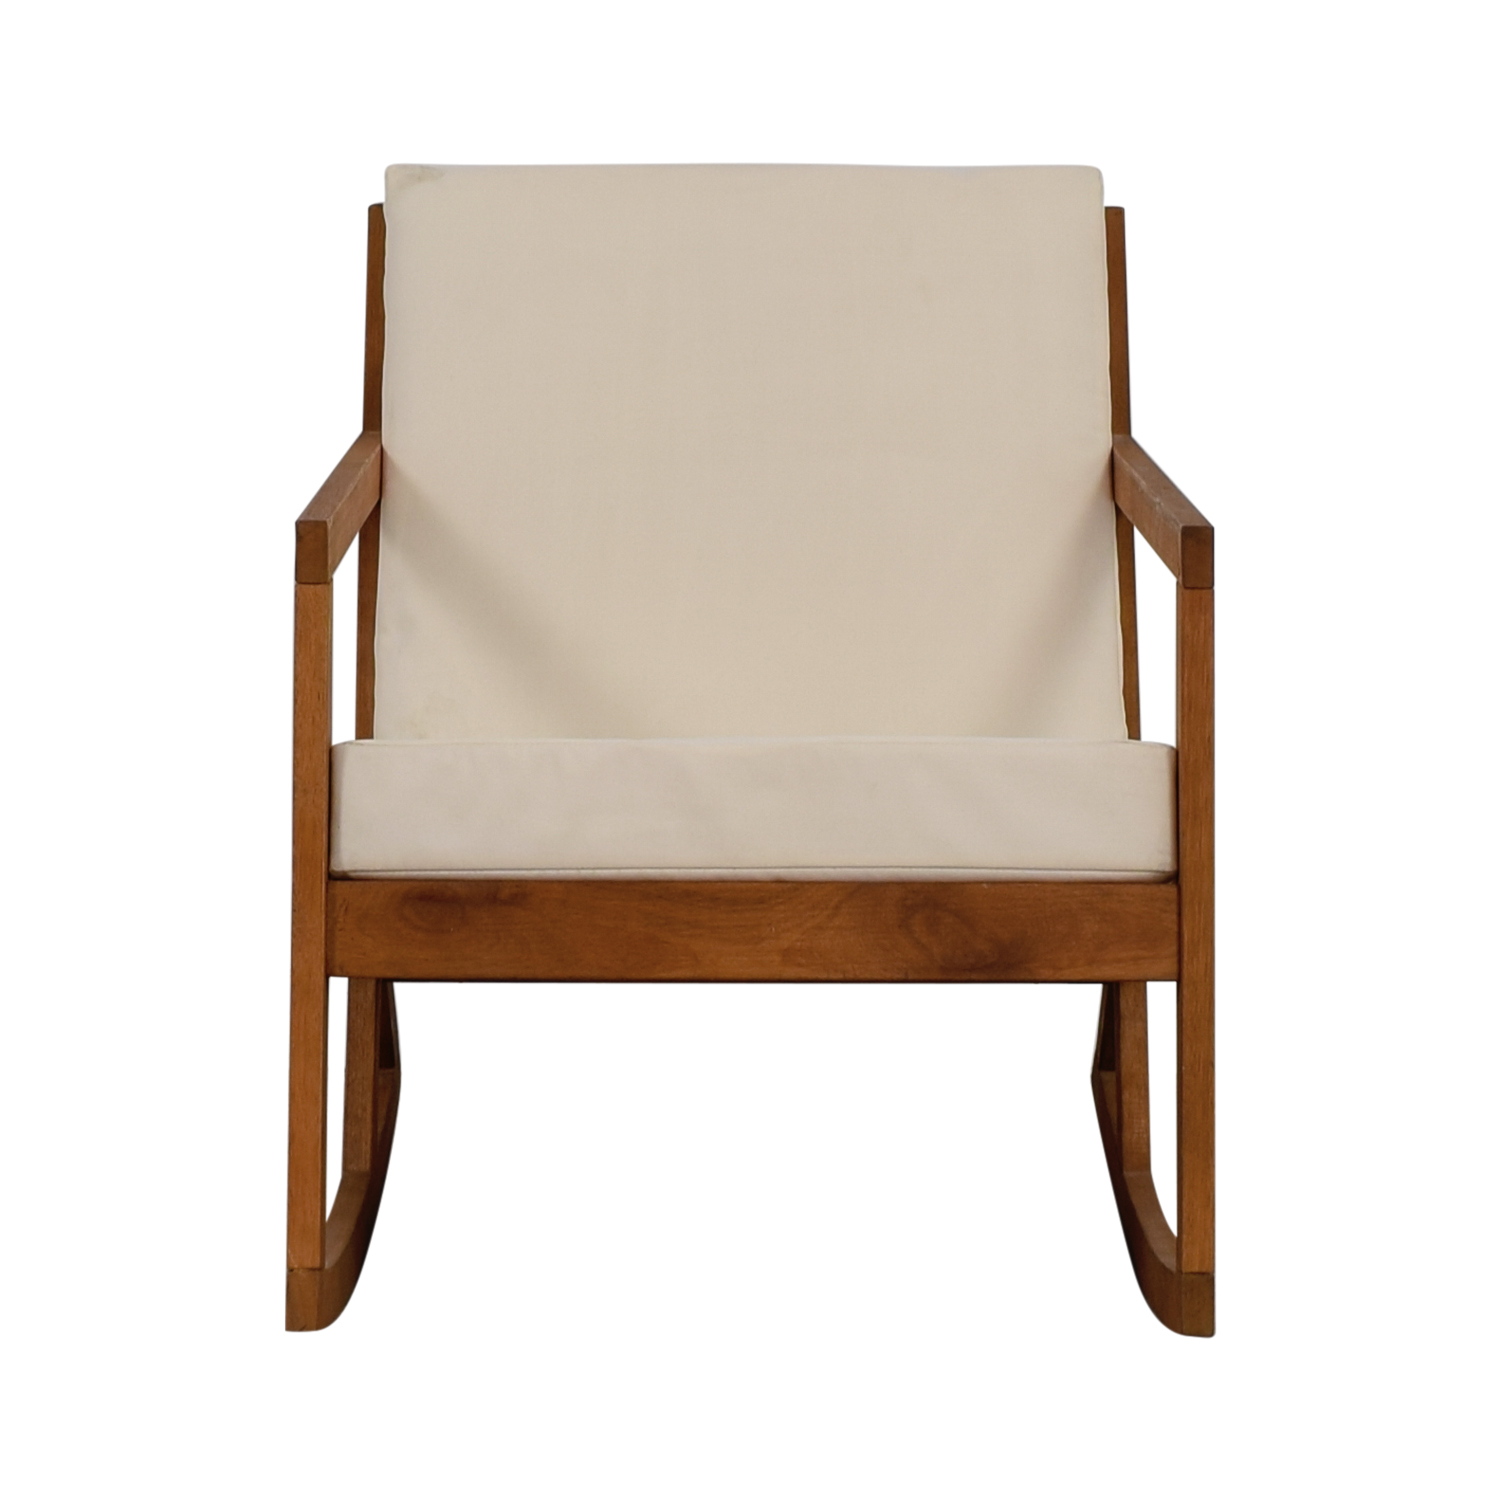 Safavieh Safavieh White Upholstered Wood Rocking Chair nyc